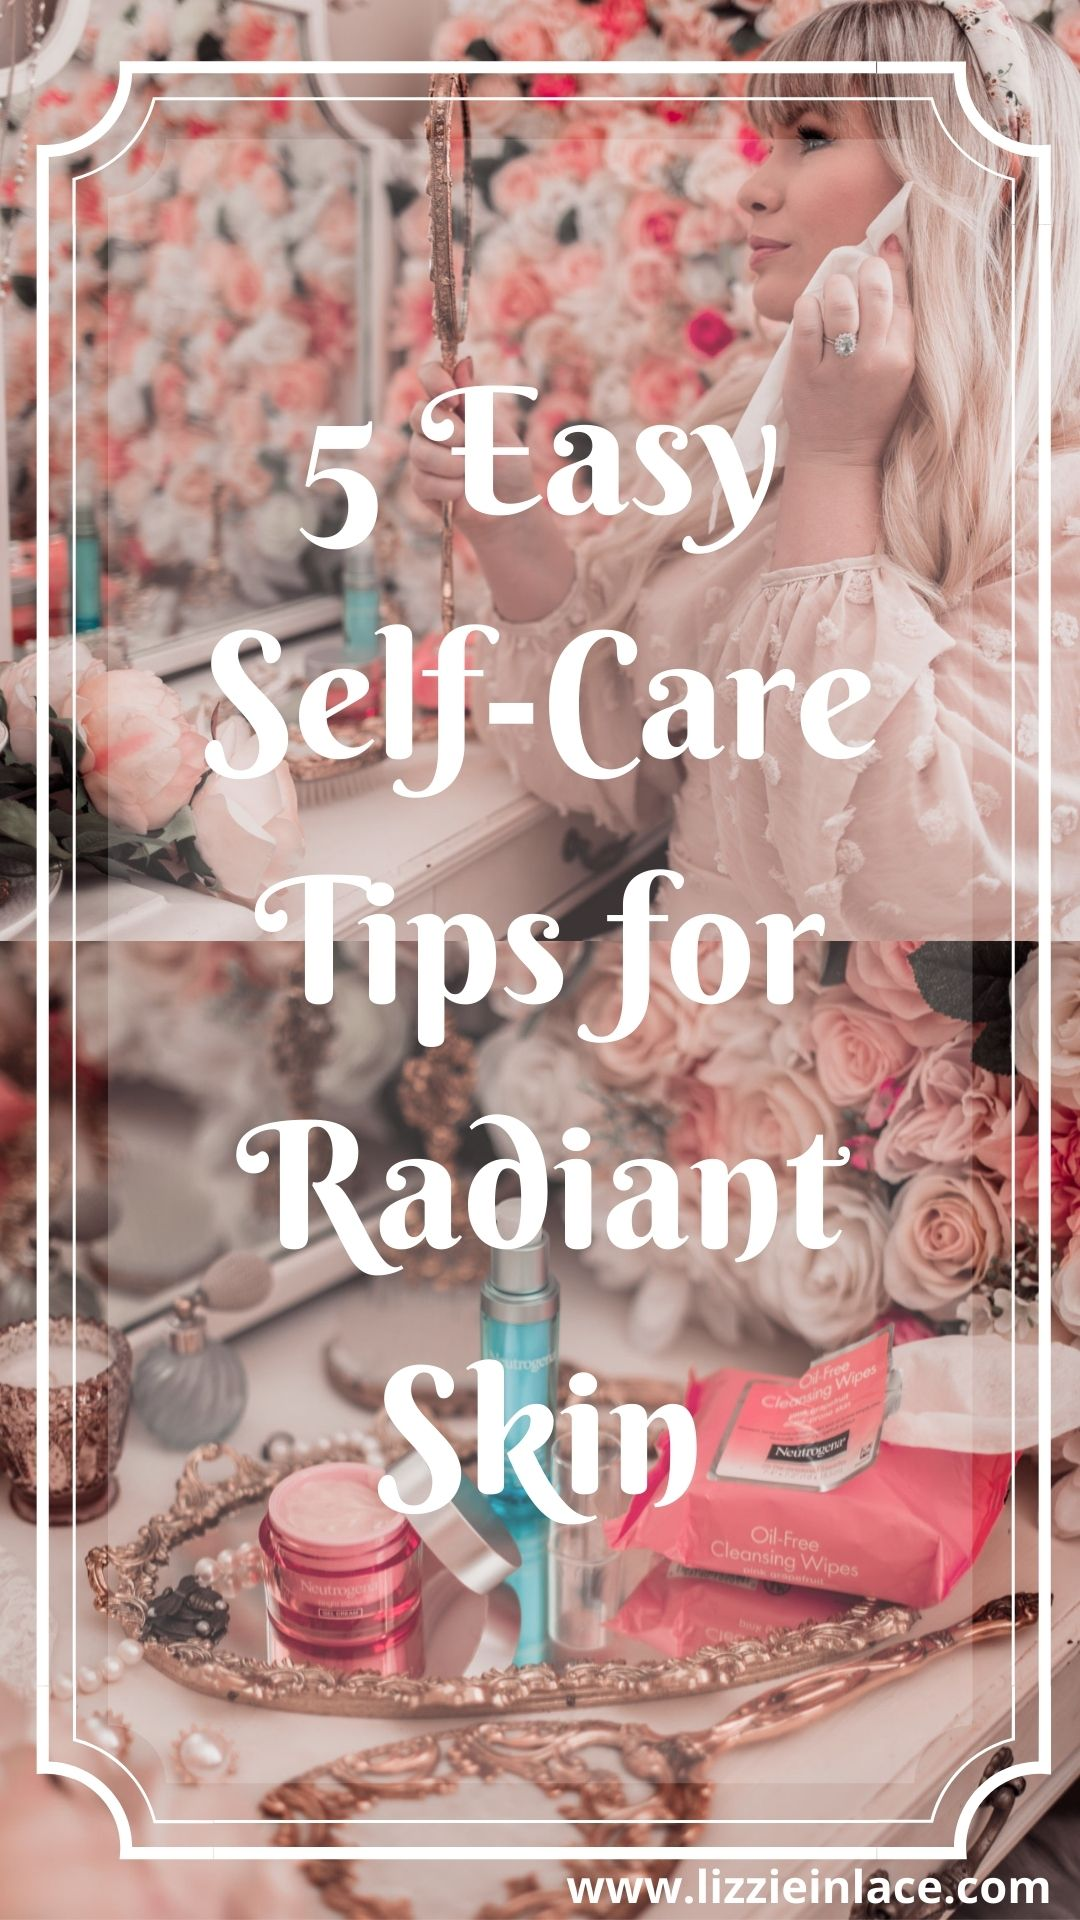 Fashion and Beauty Blogger Elizabeth Hugen of Lizzie in Lace shares her 5 Easy Self-Care Tips for Radiant Skin featuring Neutrogena Skincare